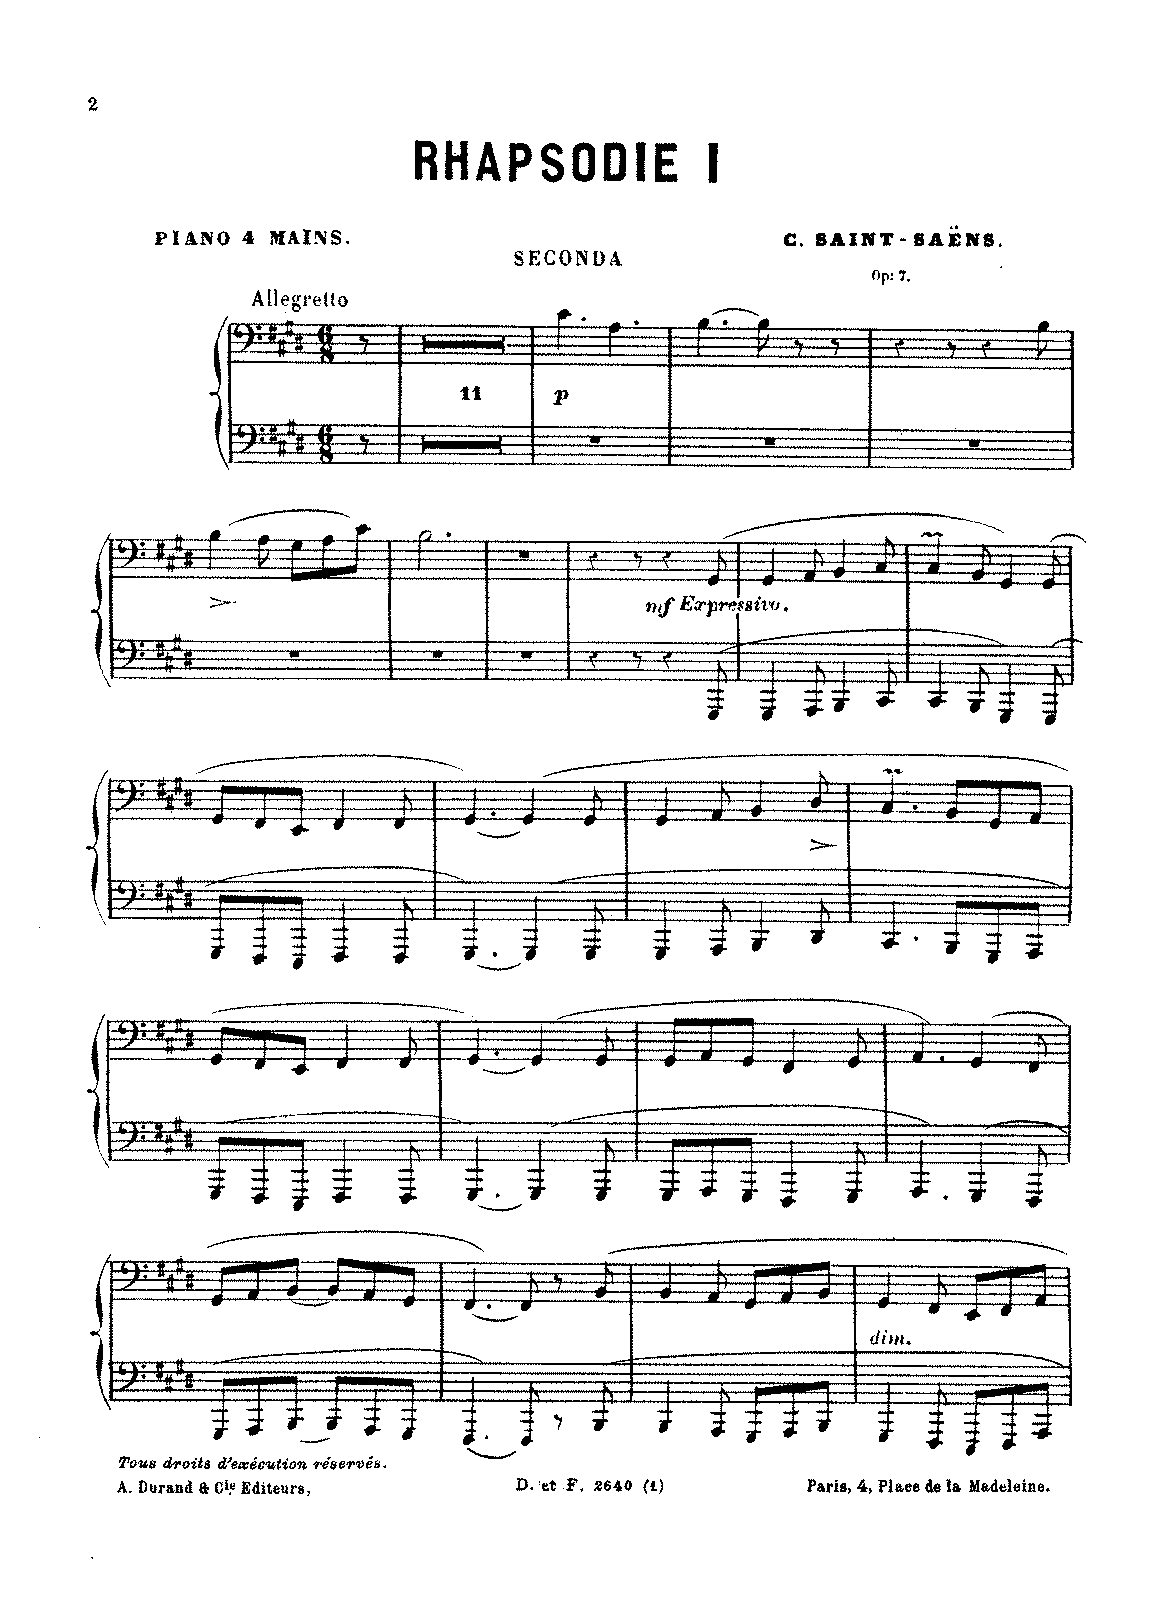 PMLP09633-Saint-Saëns - 3 Rhapsodies, Op. 7 (piano 4 hands).pdf